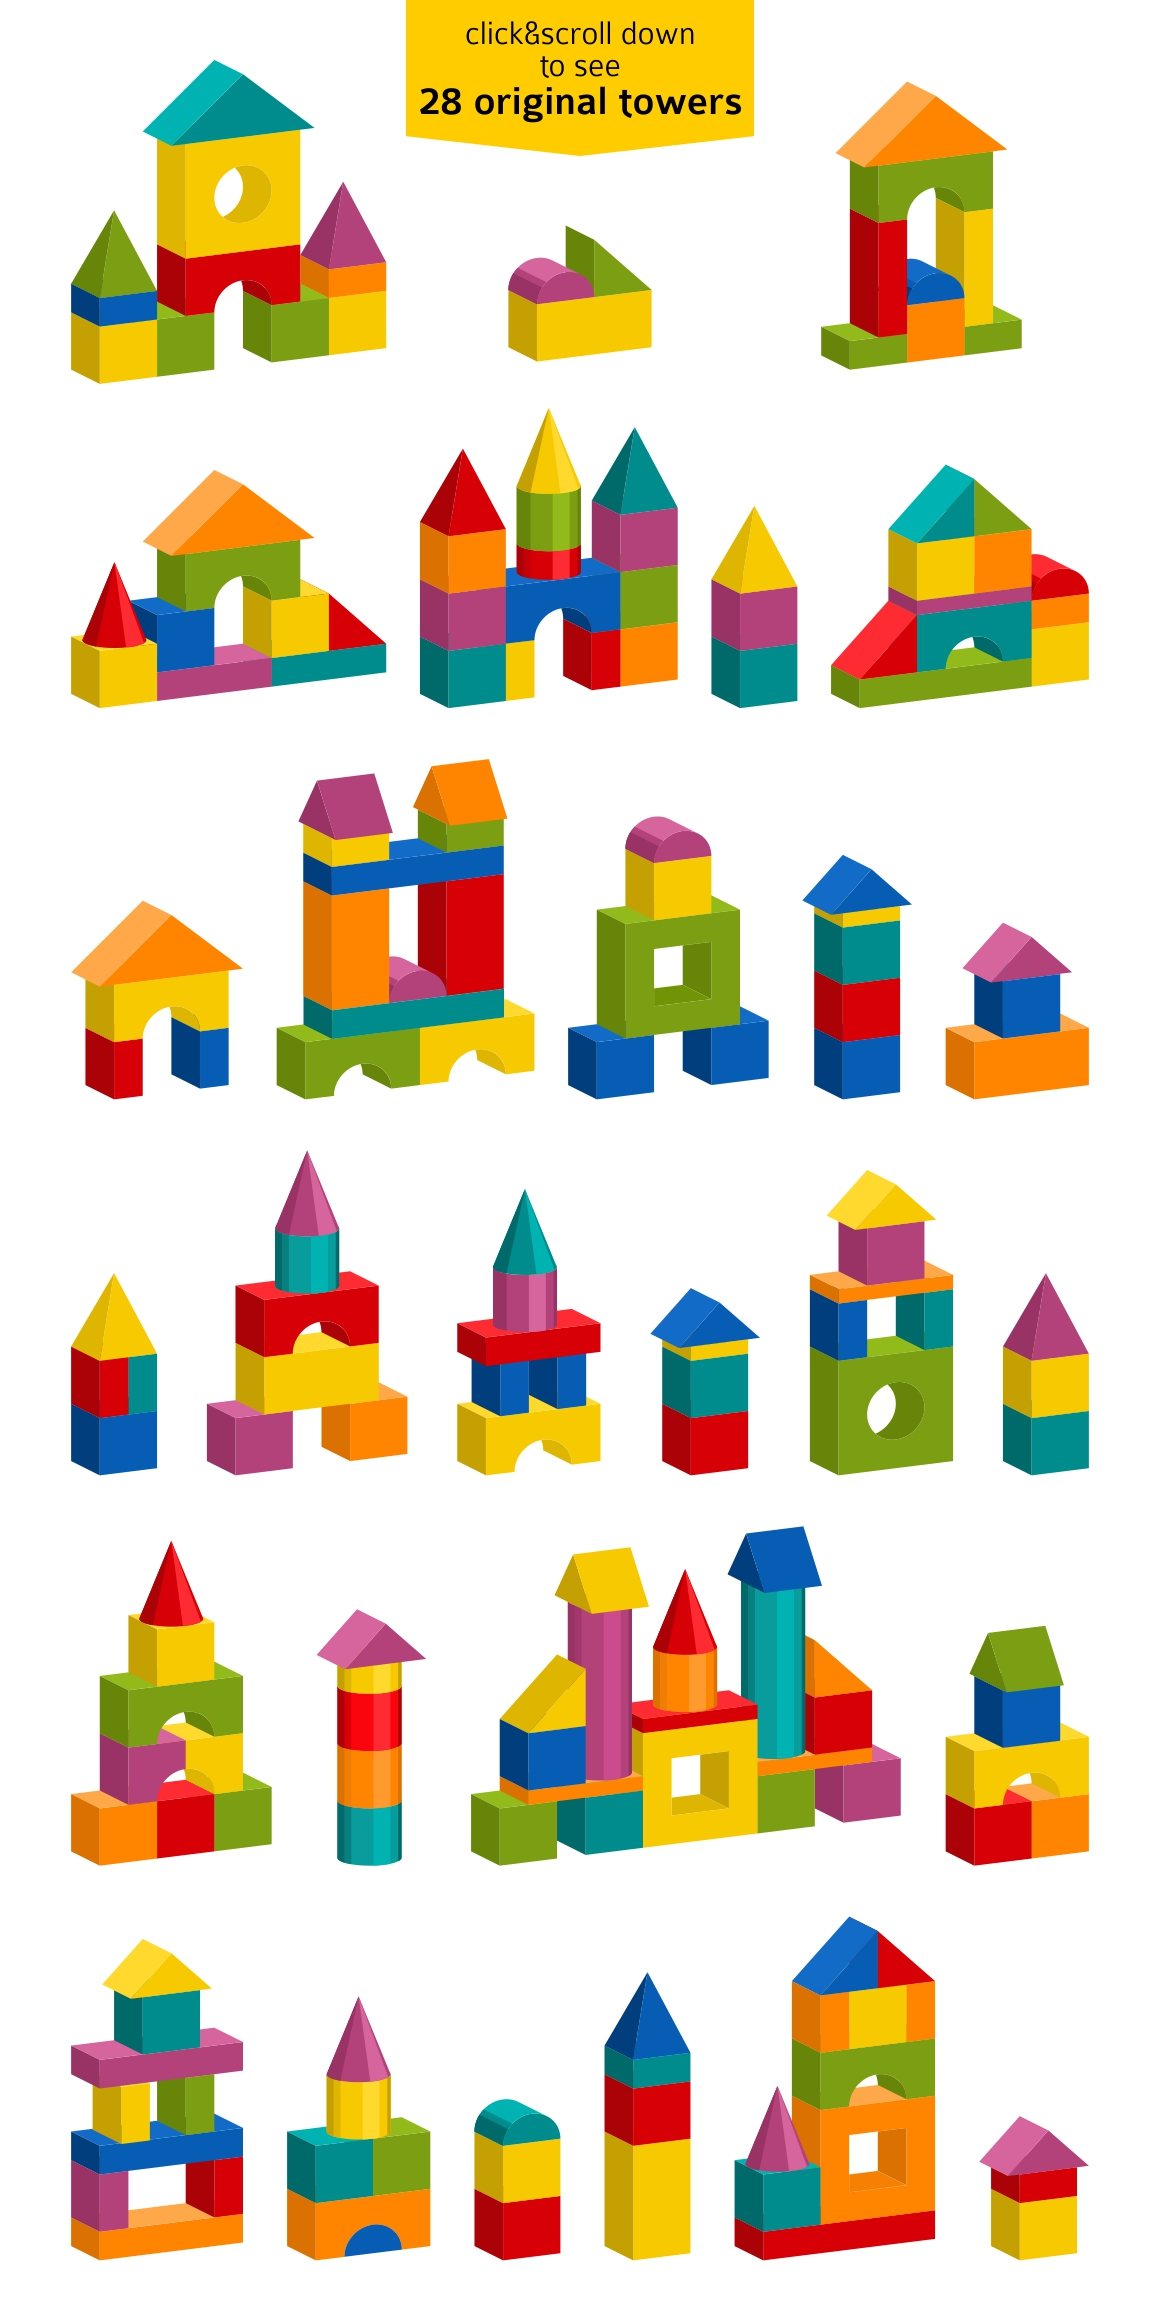 Toy blocks building towers example image 3